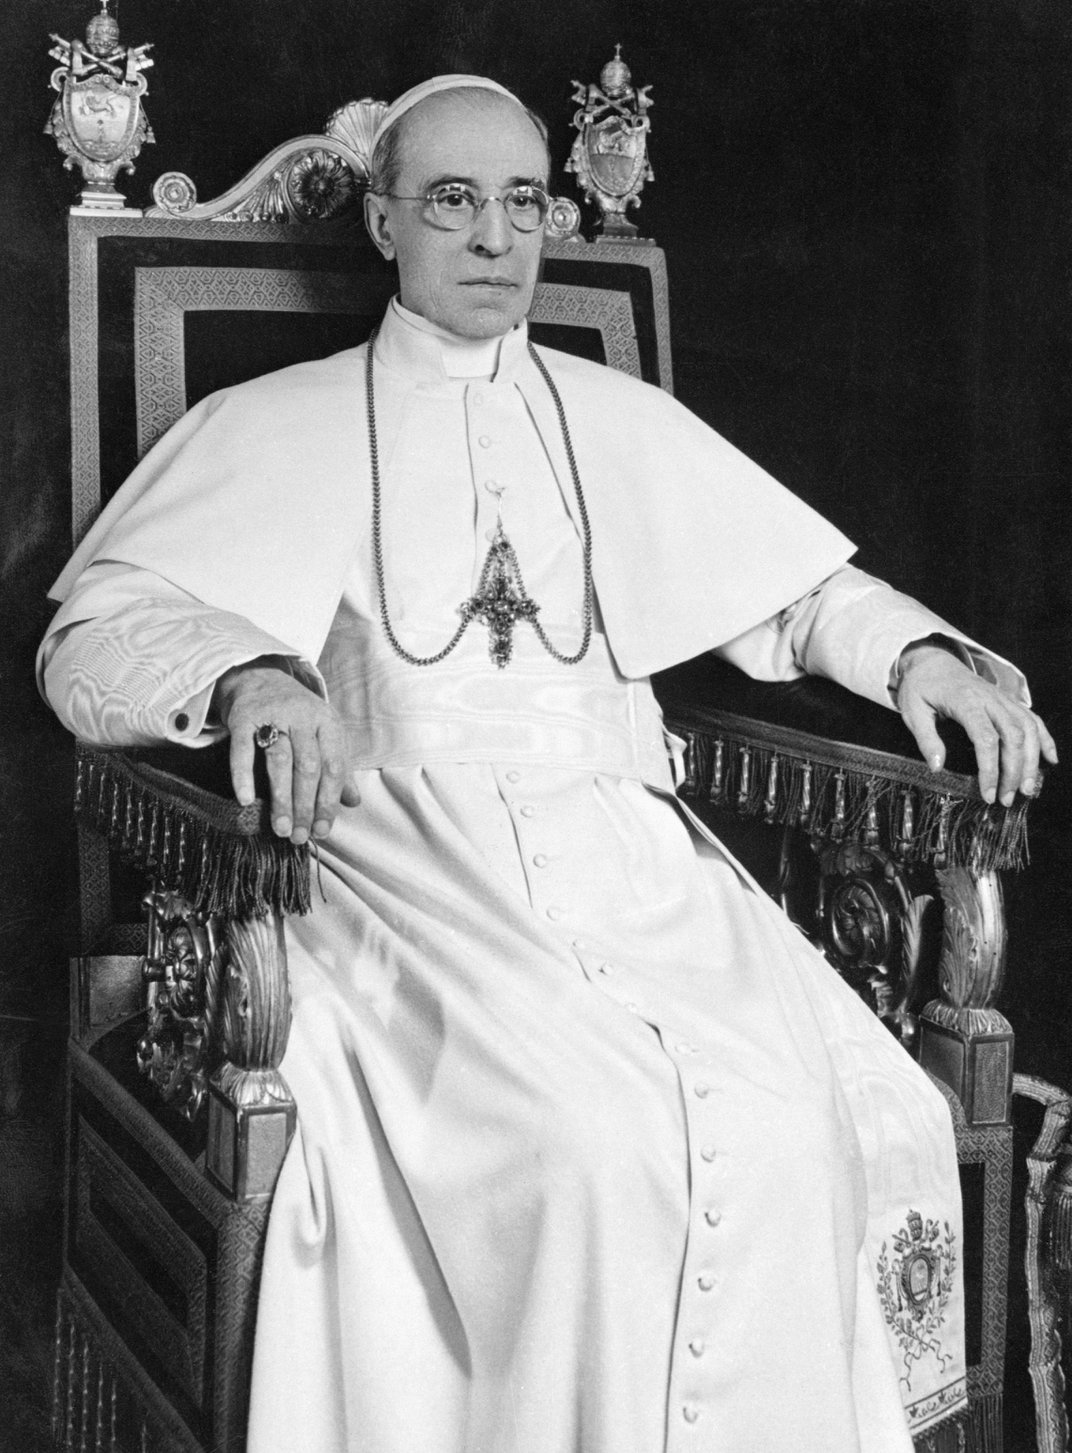 Newly Unsealed Vatican Archives Lay Out Evidence of Pope Pius XII's Knowledge of the Holocaust